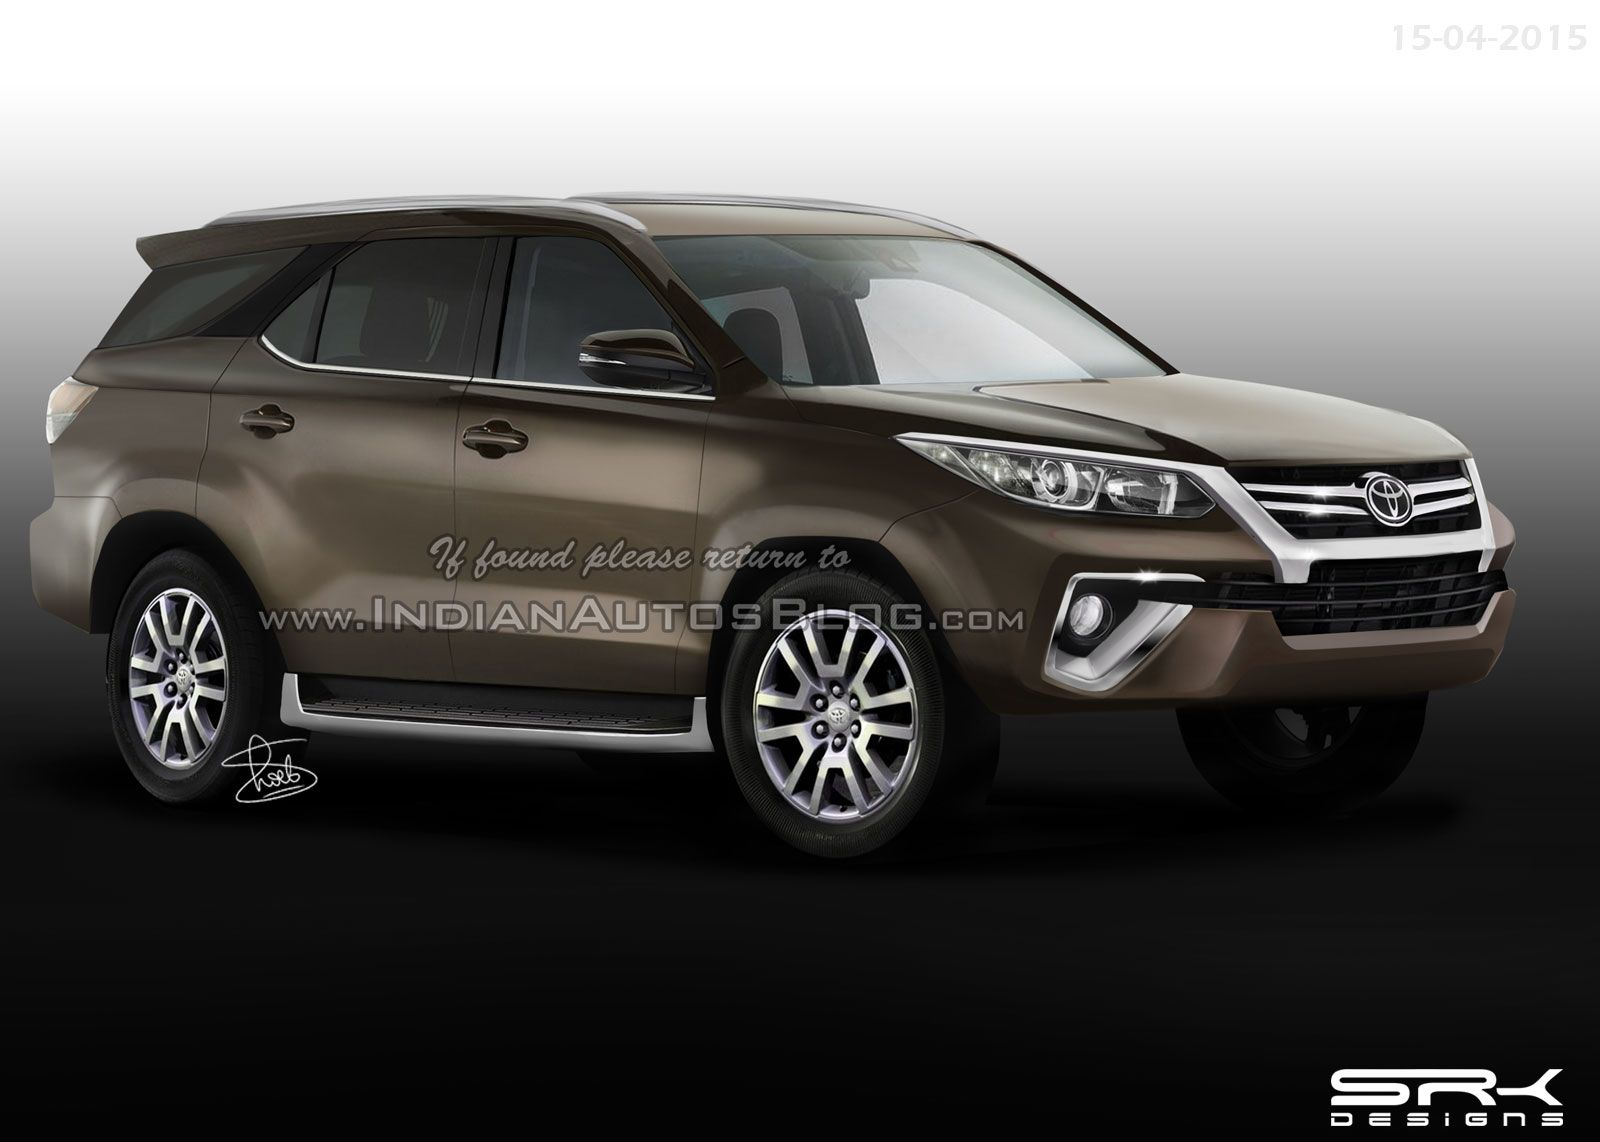 2015 toyota fortuner front artist image from indian autos blog